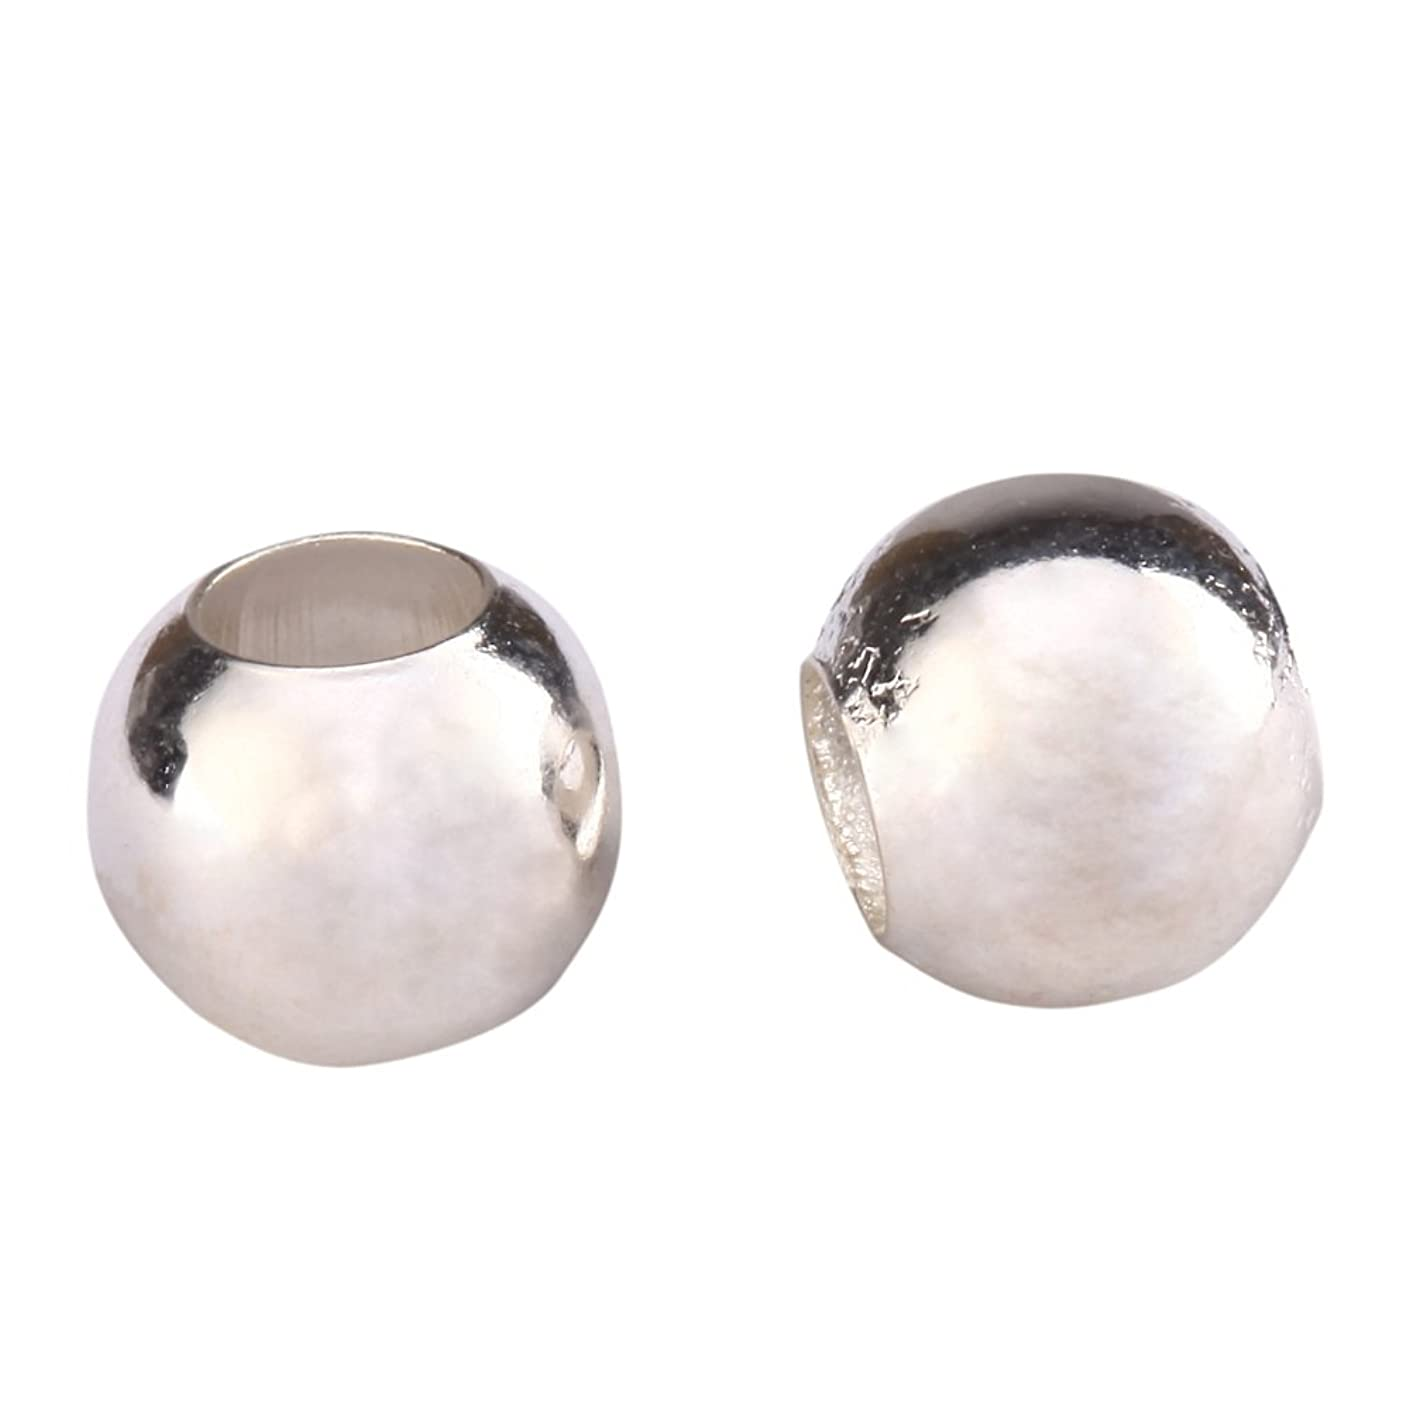 100pcs Top Quality 10mm Smooth Silver Loose Round Spacer Beads (Large Hole ~3.5mm) for Jewelry Craft Making CF88-10